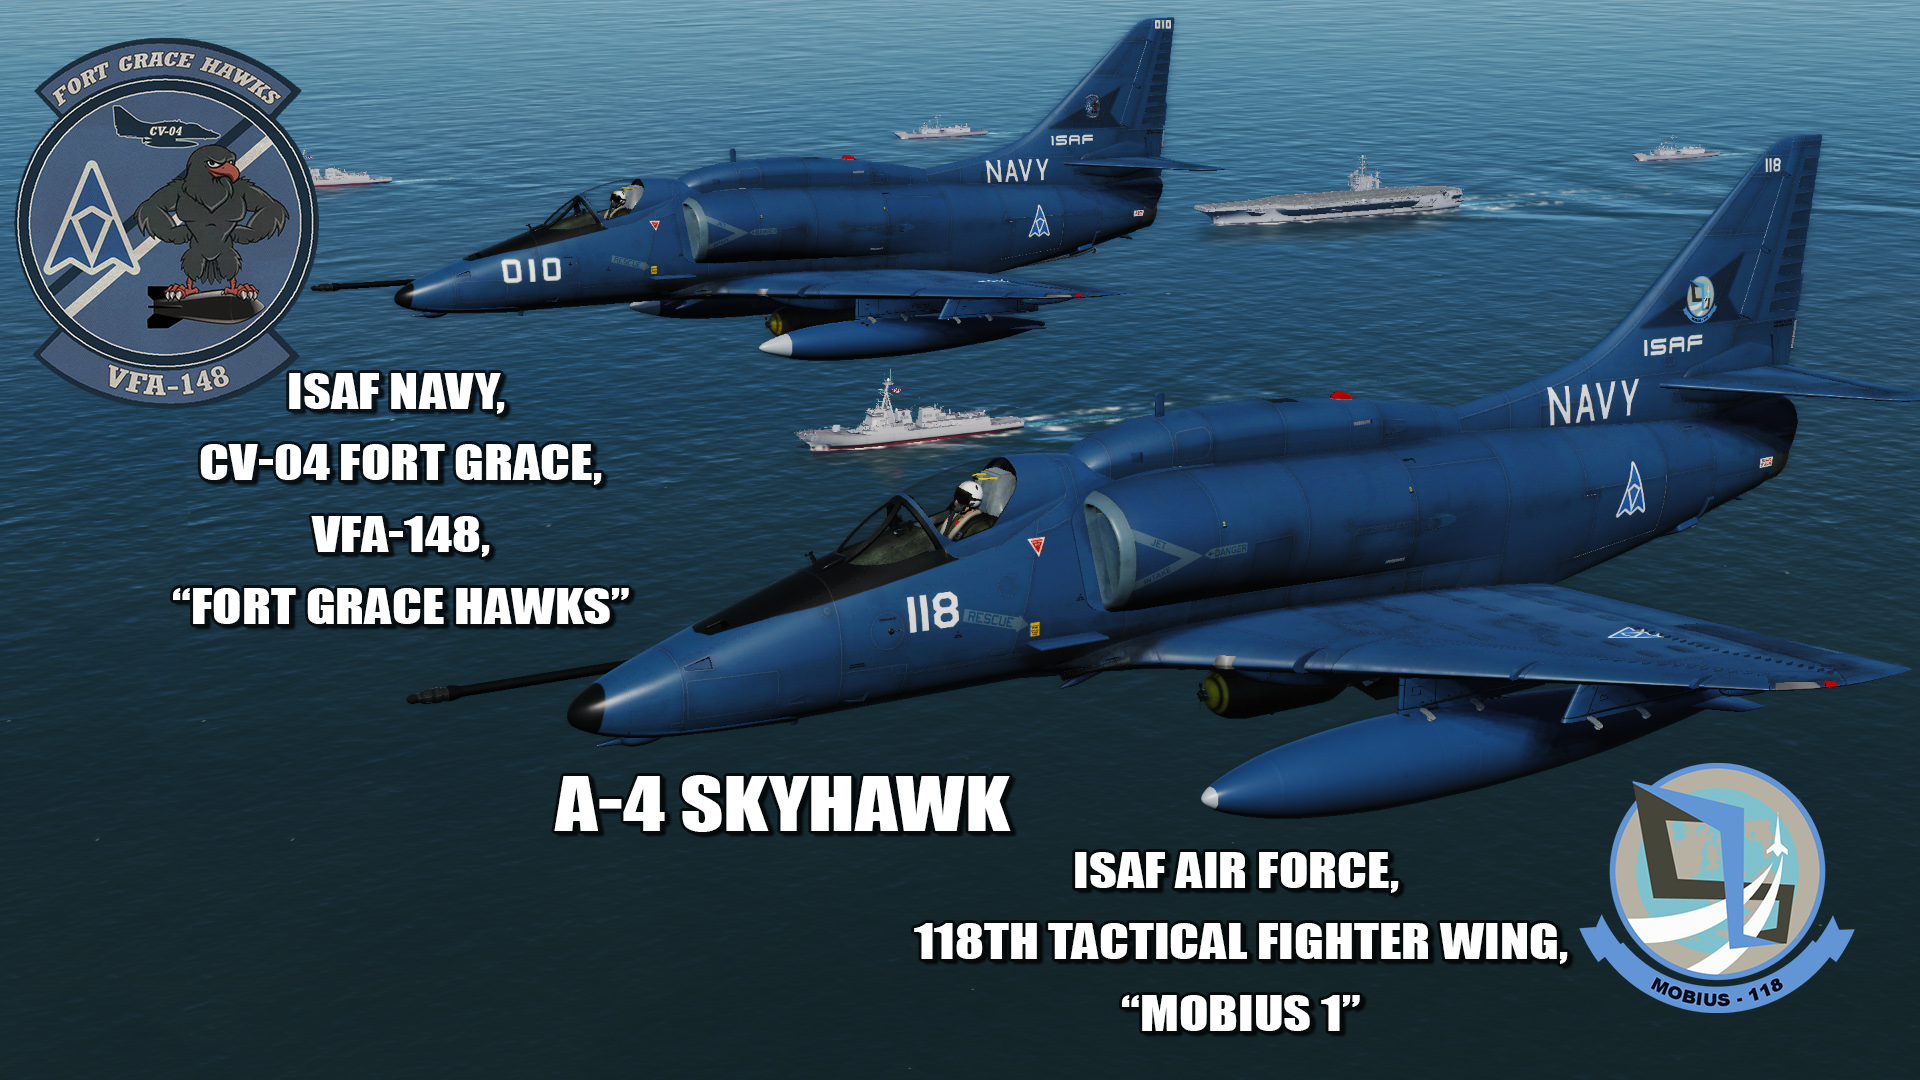 Ace Combat - ISAF Navy and Mobius One A-4 Skyhawk